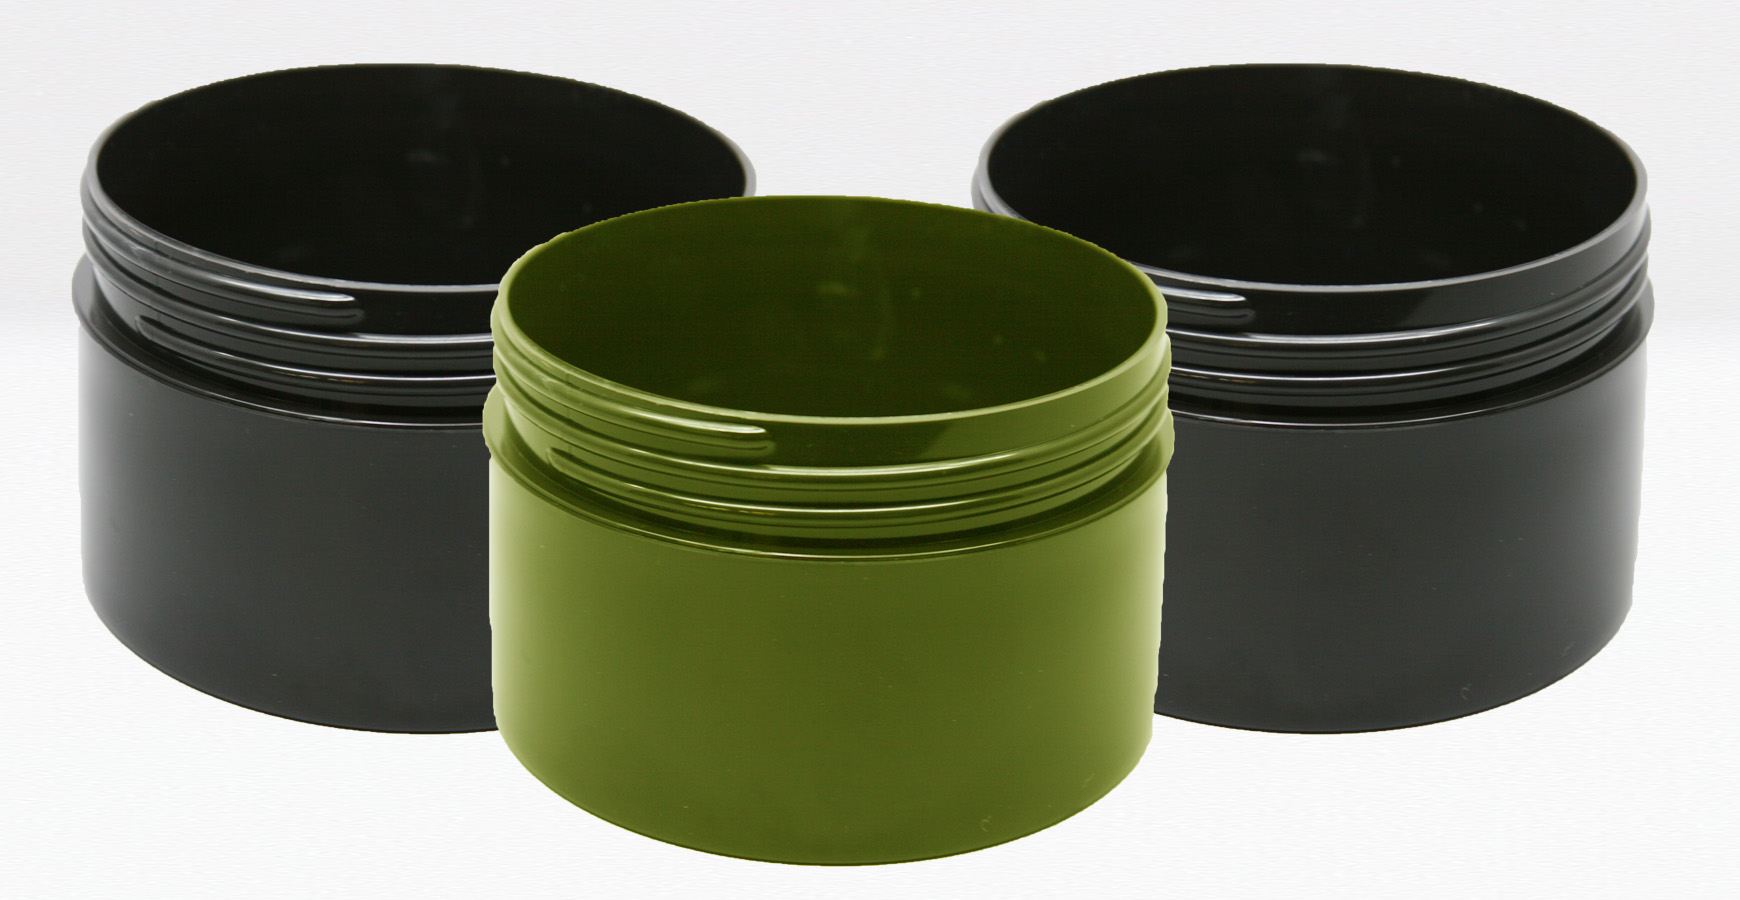 Wide-mouth, BPA-free plastic jars keep your pet's pot fresh.